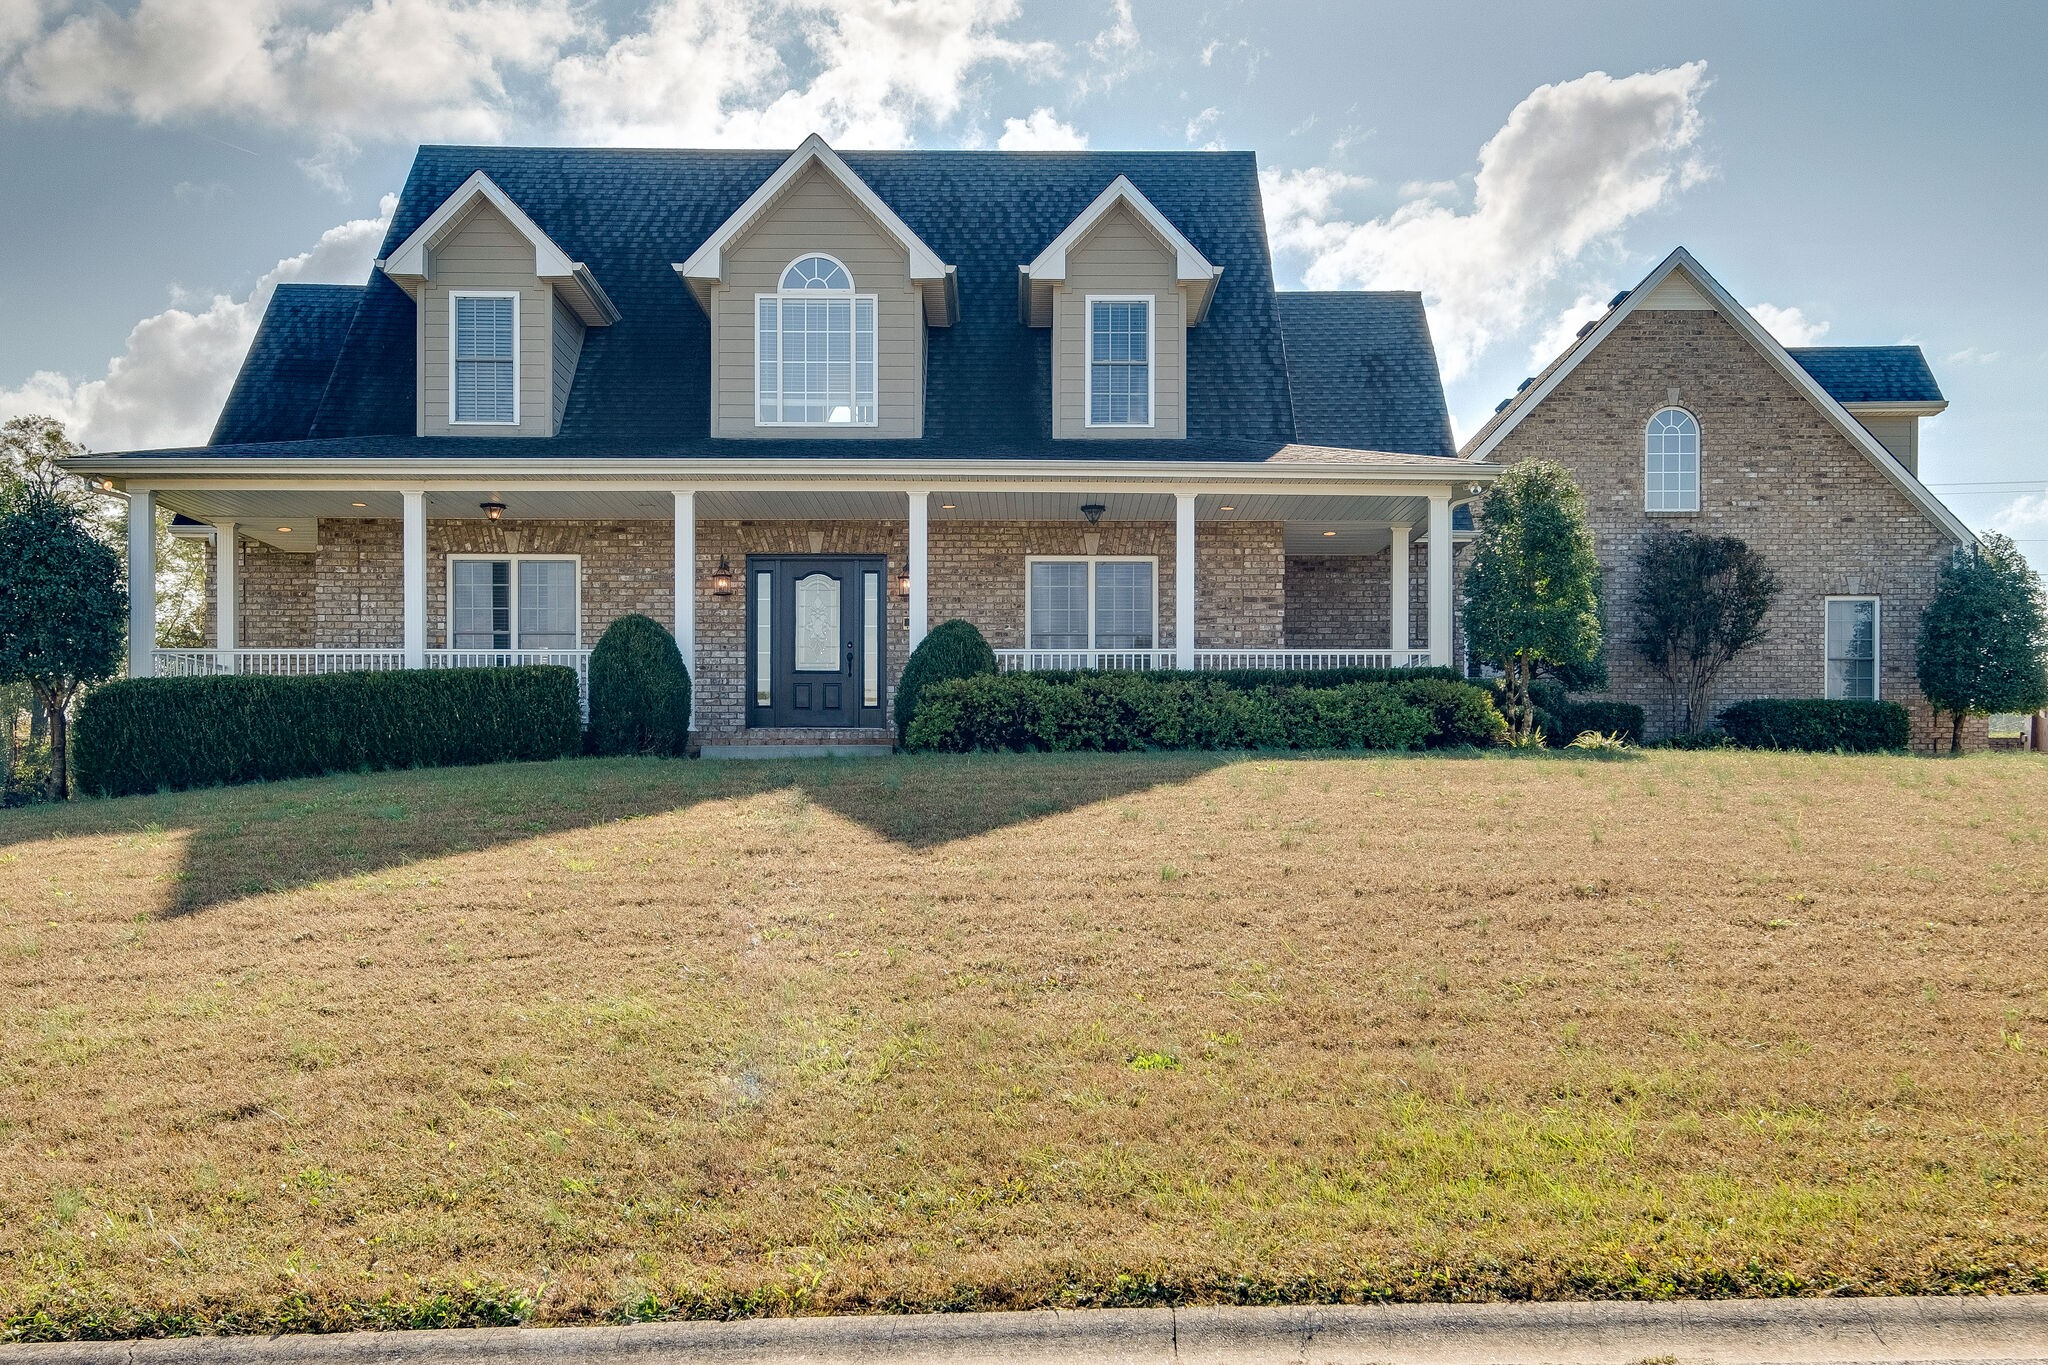 807 Little Springs Rd Property Photo - Clarksville, TN real estate listing